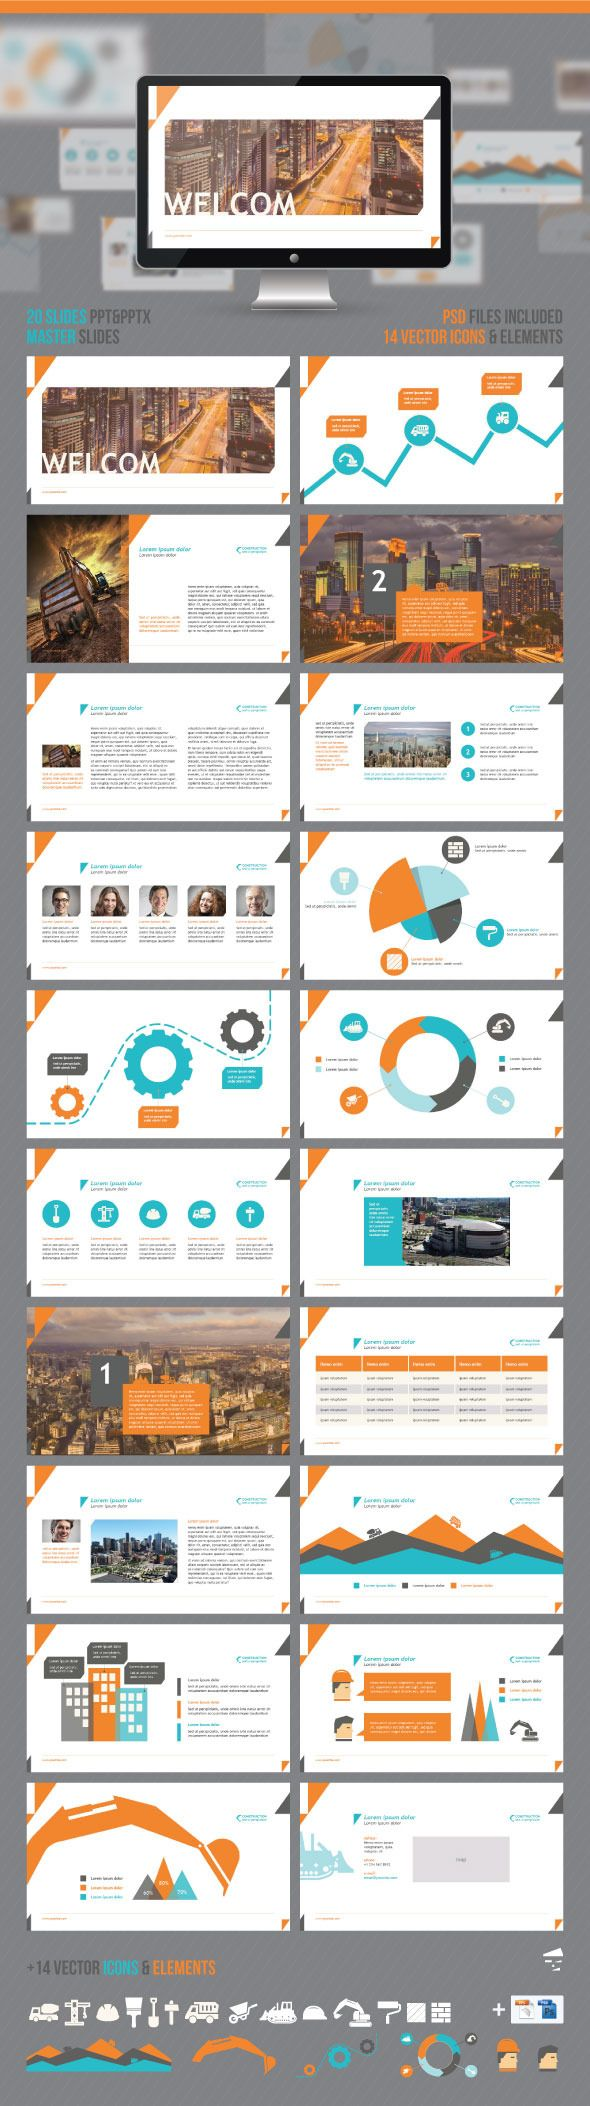 construction powerpoint presentation | business powerpoint, Powerpoint templates